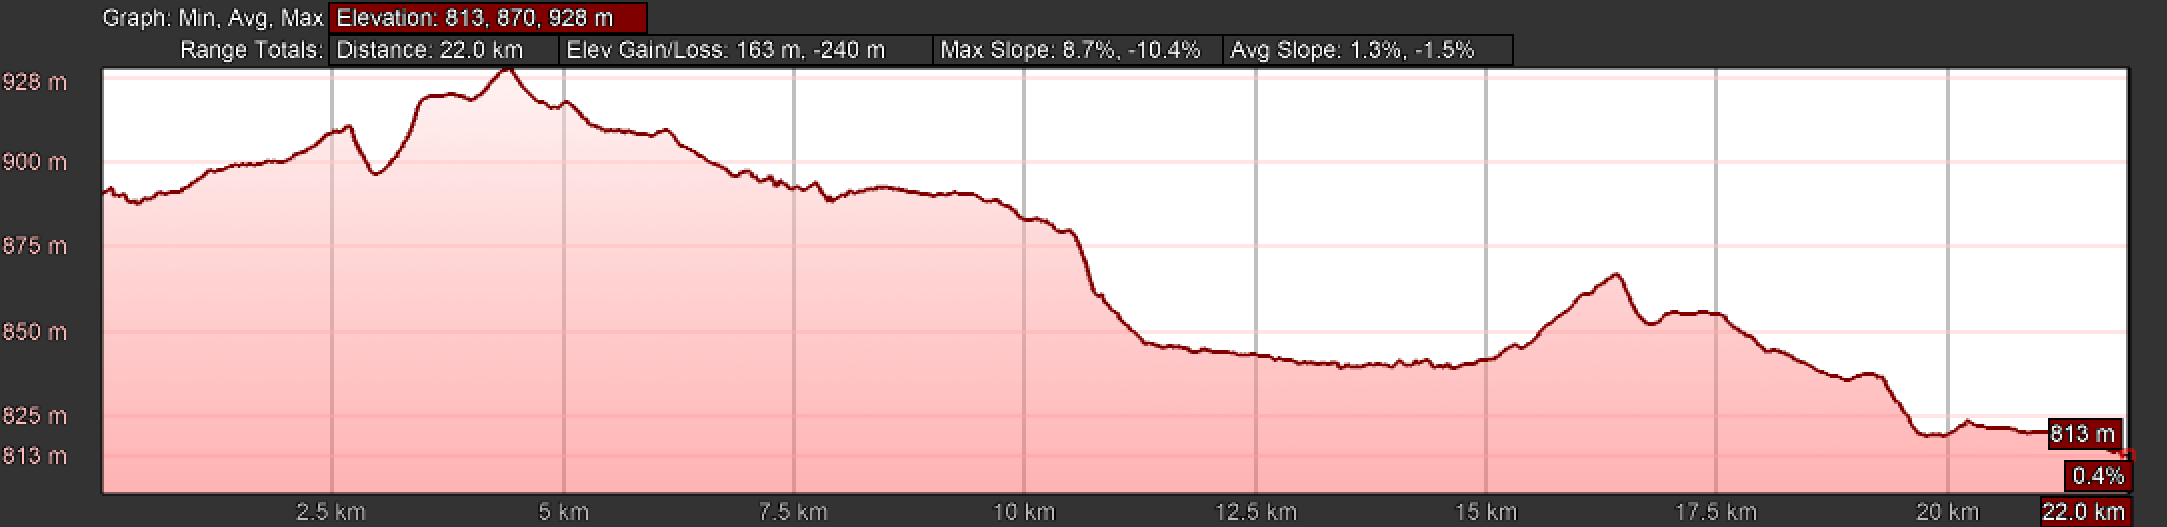 Elevation Profile, Day Five A, Camino Teresiano, Southern Route, Mancera de Abajo to Garcihernández